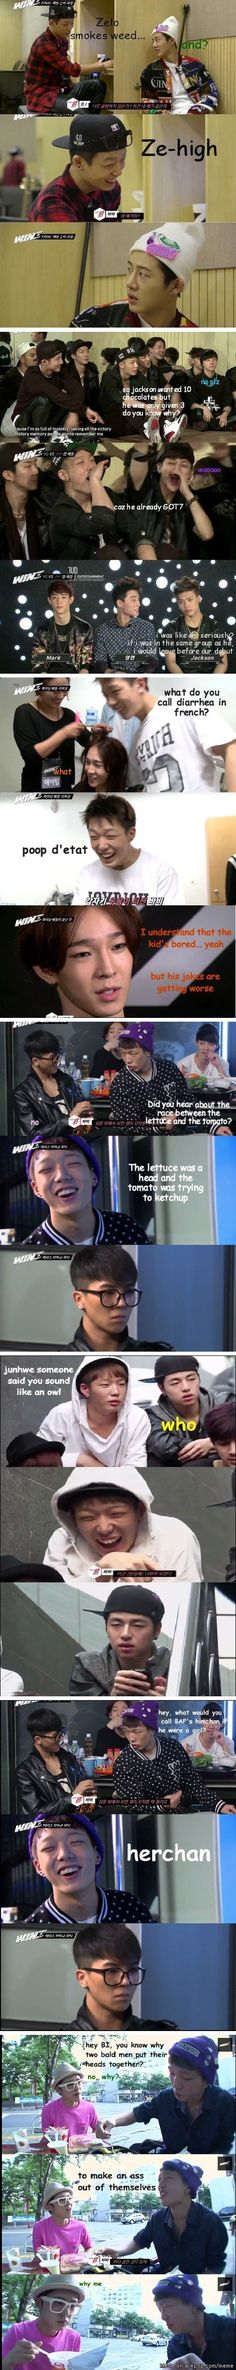 proudly introducing #Bobby the derp from #iKon   Meme Center | allkpop